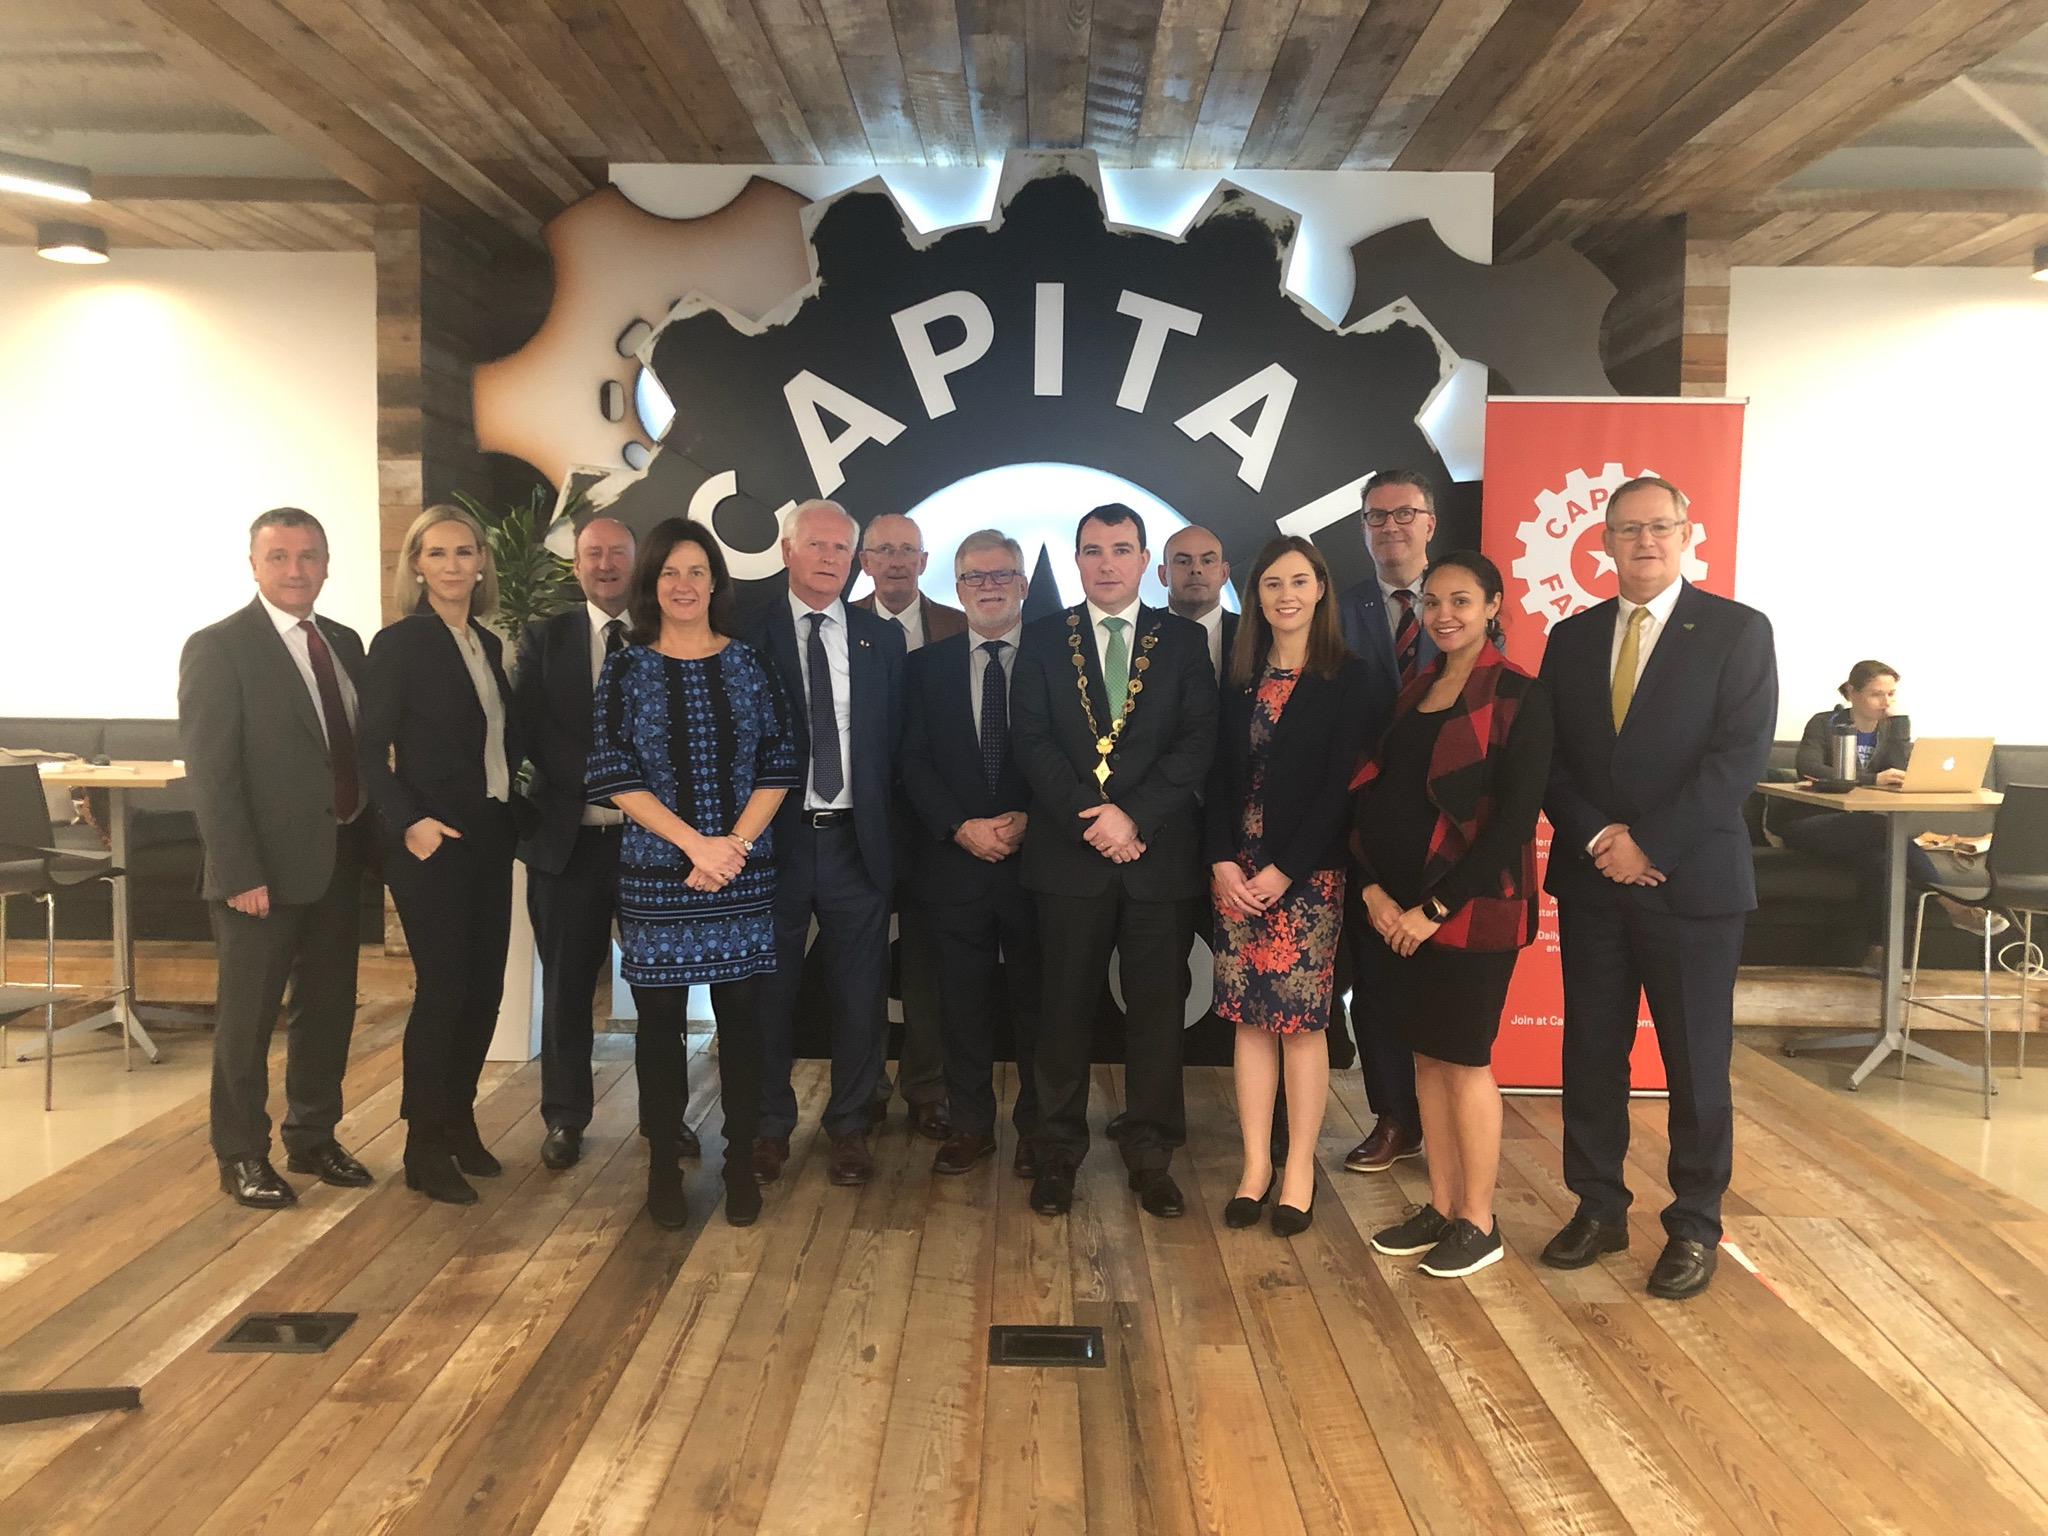 The delegation from Limerick visited Capital Factory, a meeting place for entrepreneurs, investors, business mentors and customers in Texas.